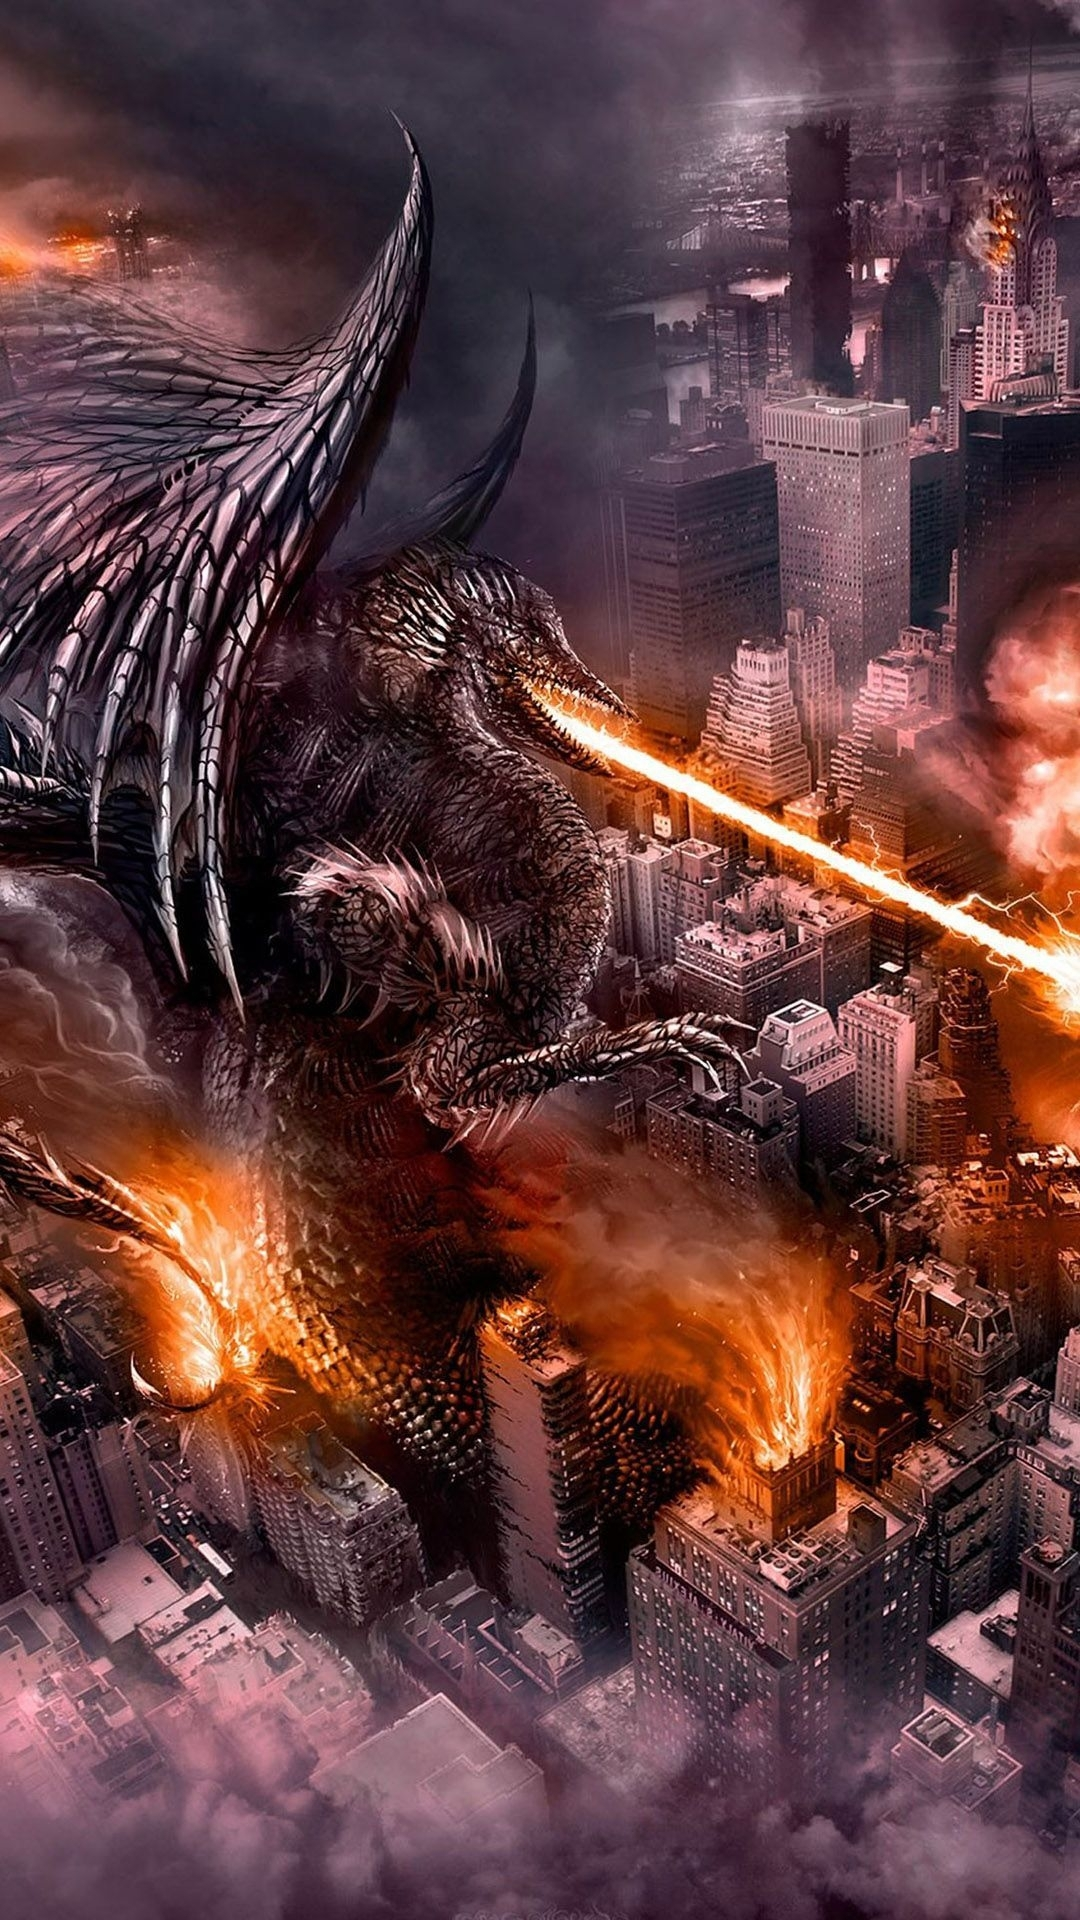 wallpaper.wiki-mobile-dragon-iphone-pictures-pic-wpb008026